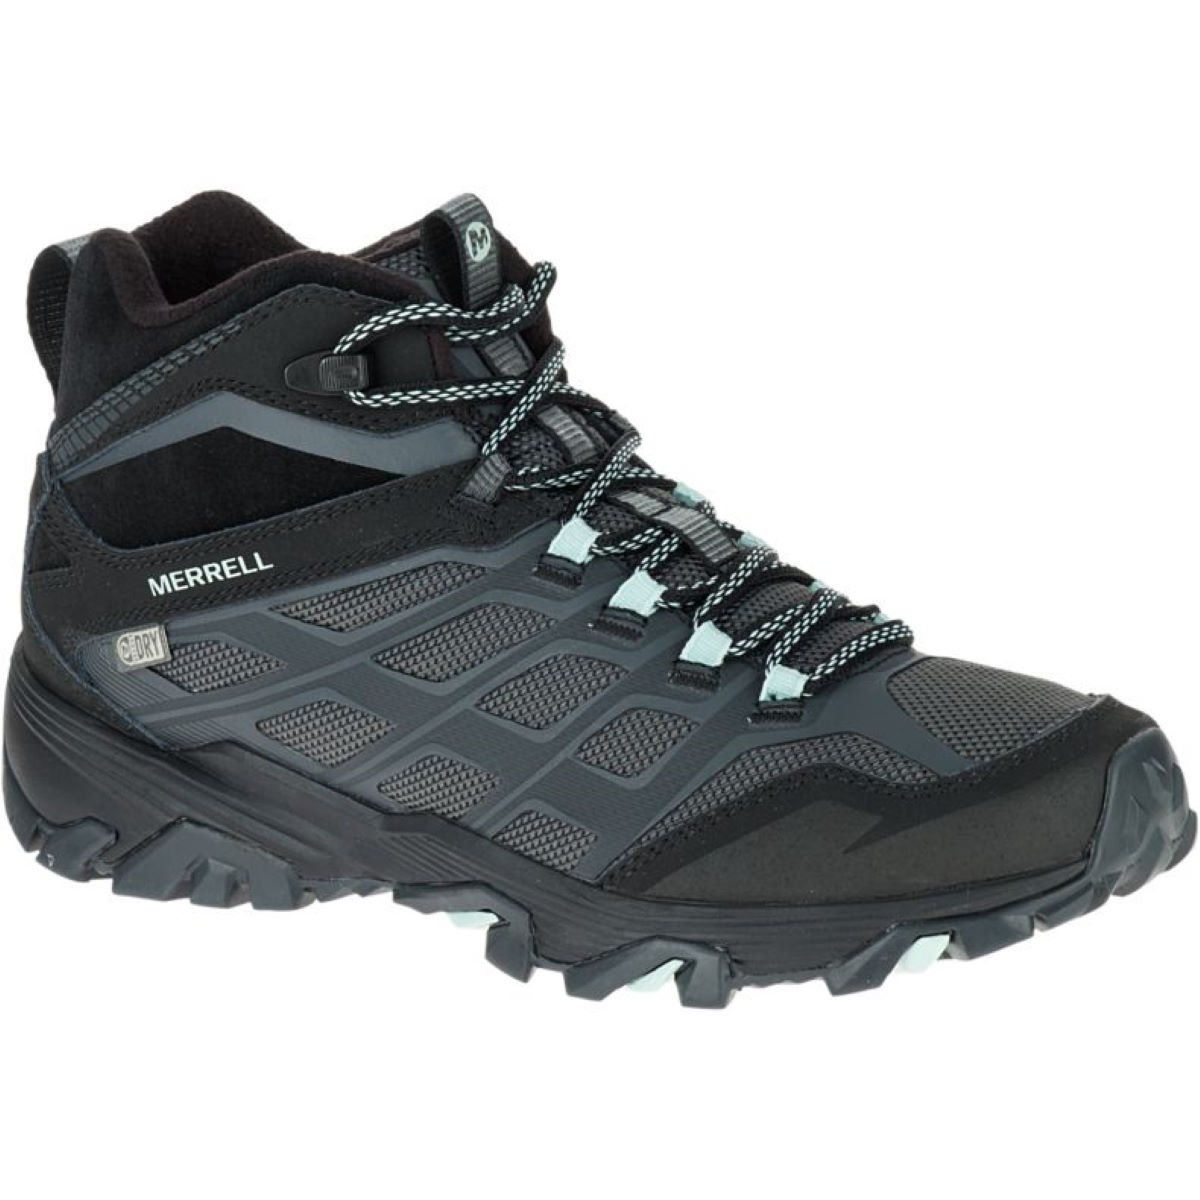 Chaussures Femme Merrell MOAB FST ICE+ THERMO - 5.5 GRANITE